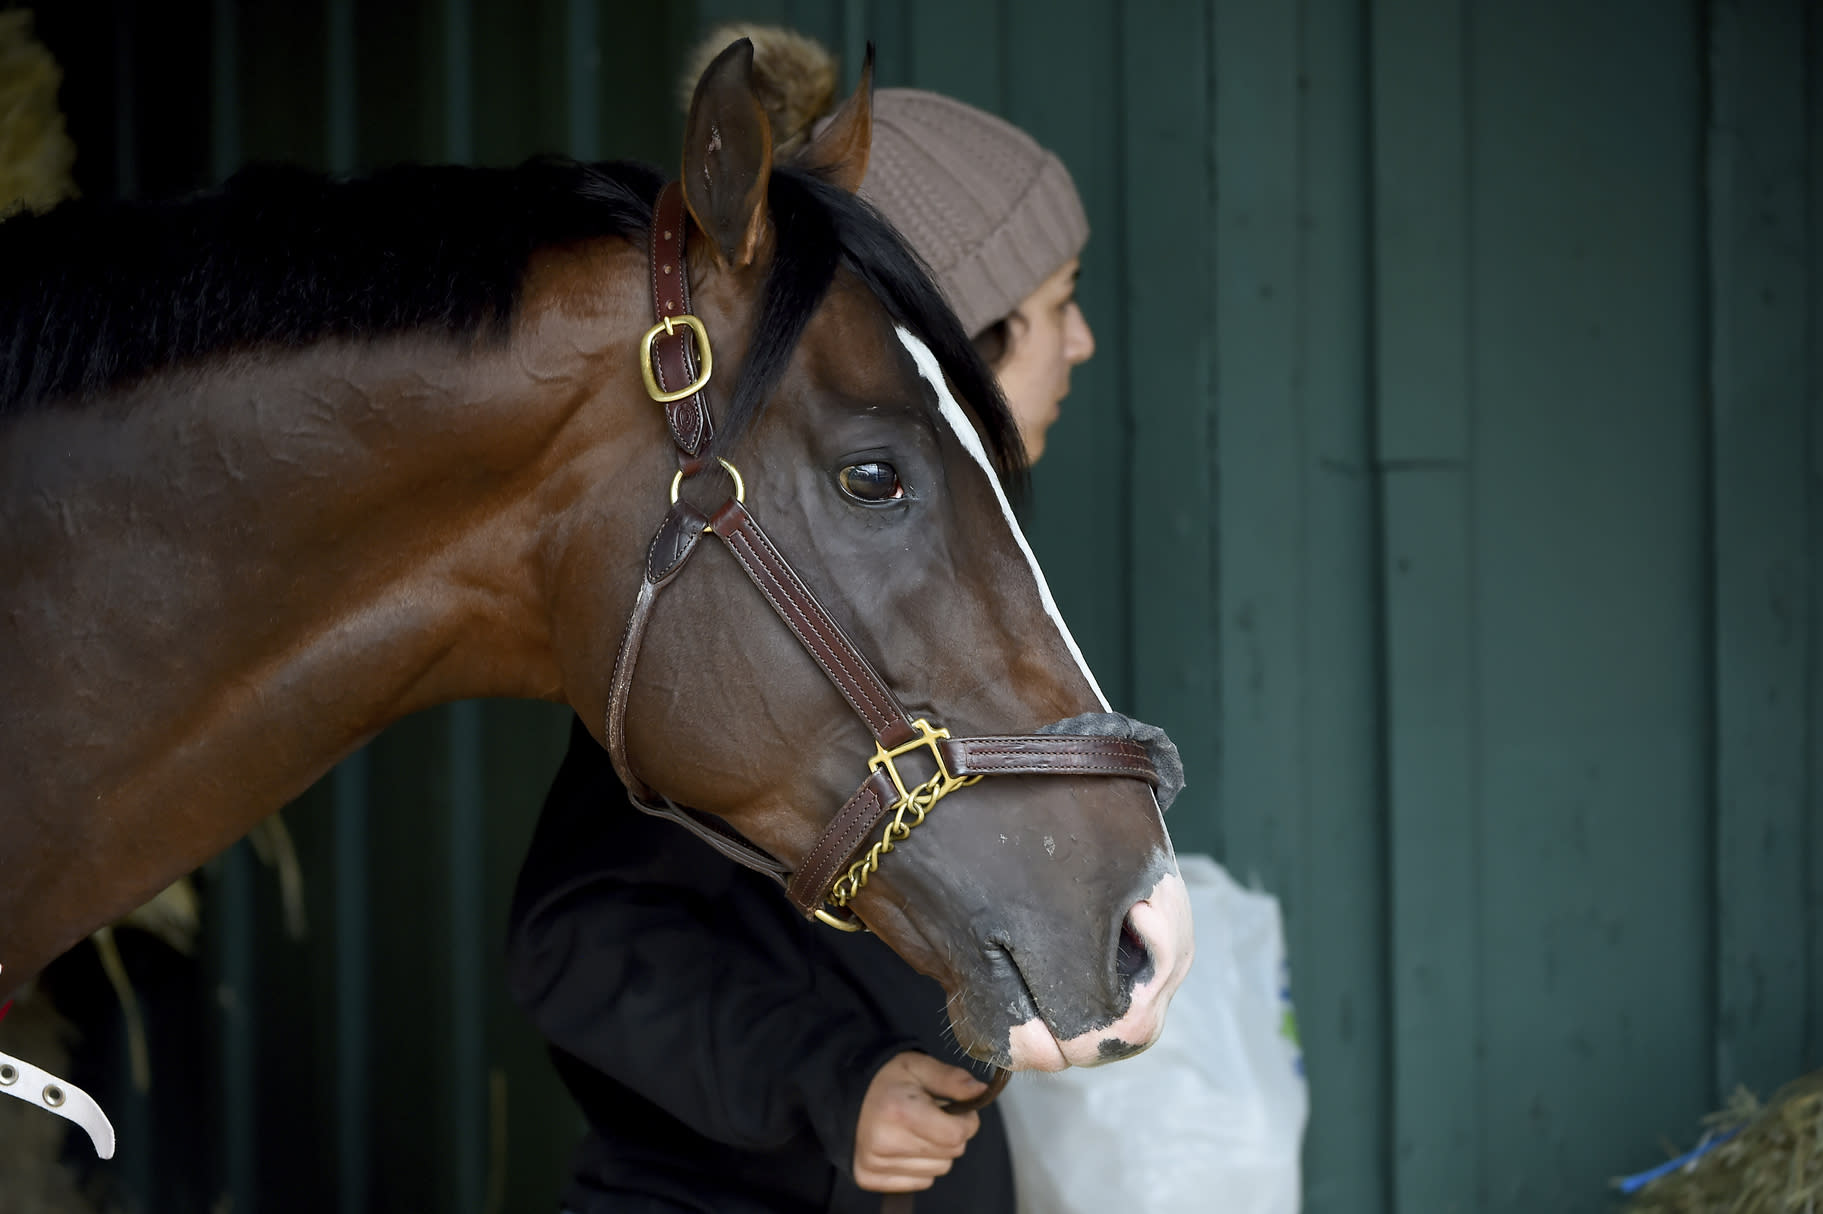 Preakness contender War of Will is led through the barn, Tuesday, May 14, 2019, at Pimlico Race Course in Baltimore. The Preakness Stakes horse race is scheduled to take place Saturday, May 18. (AP Photo/Will Newton)